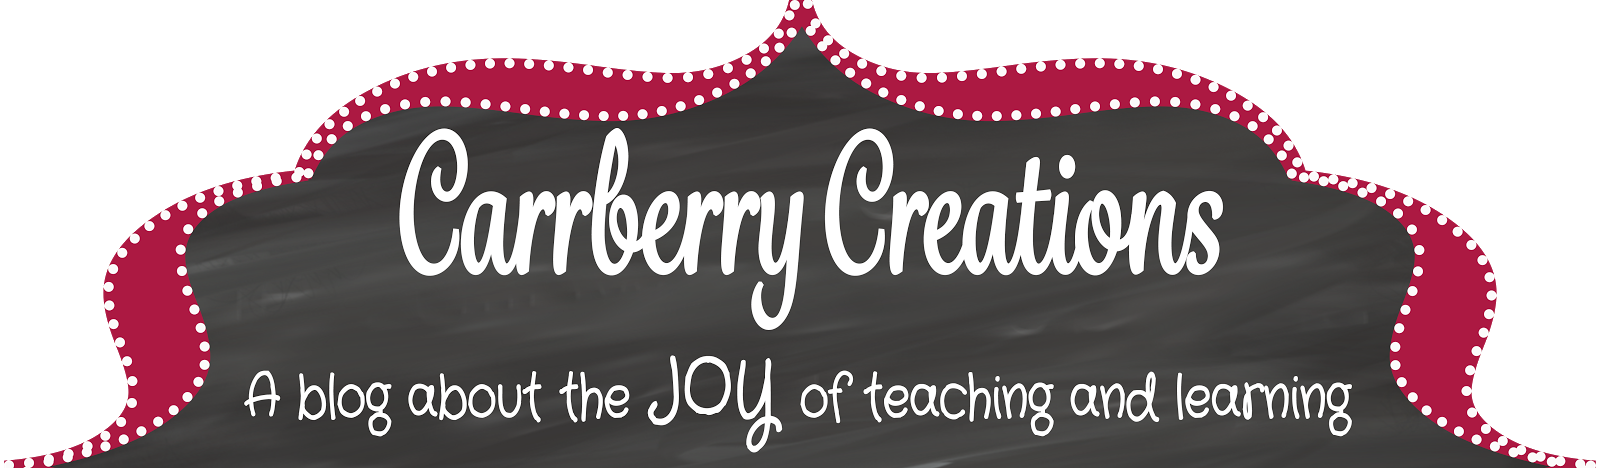 Carrberry Creations